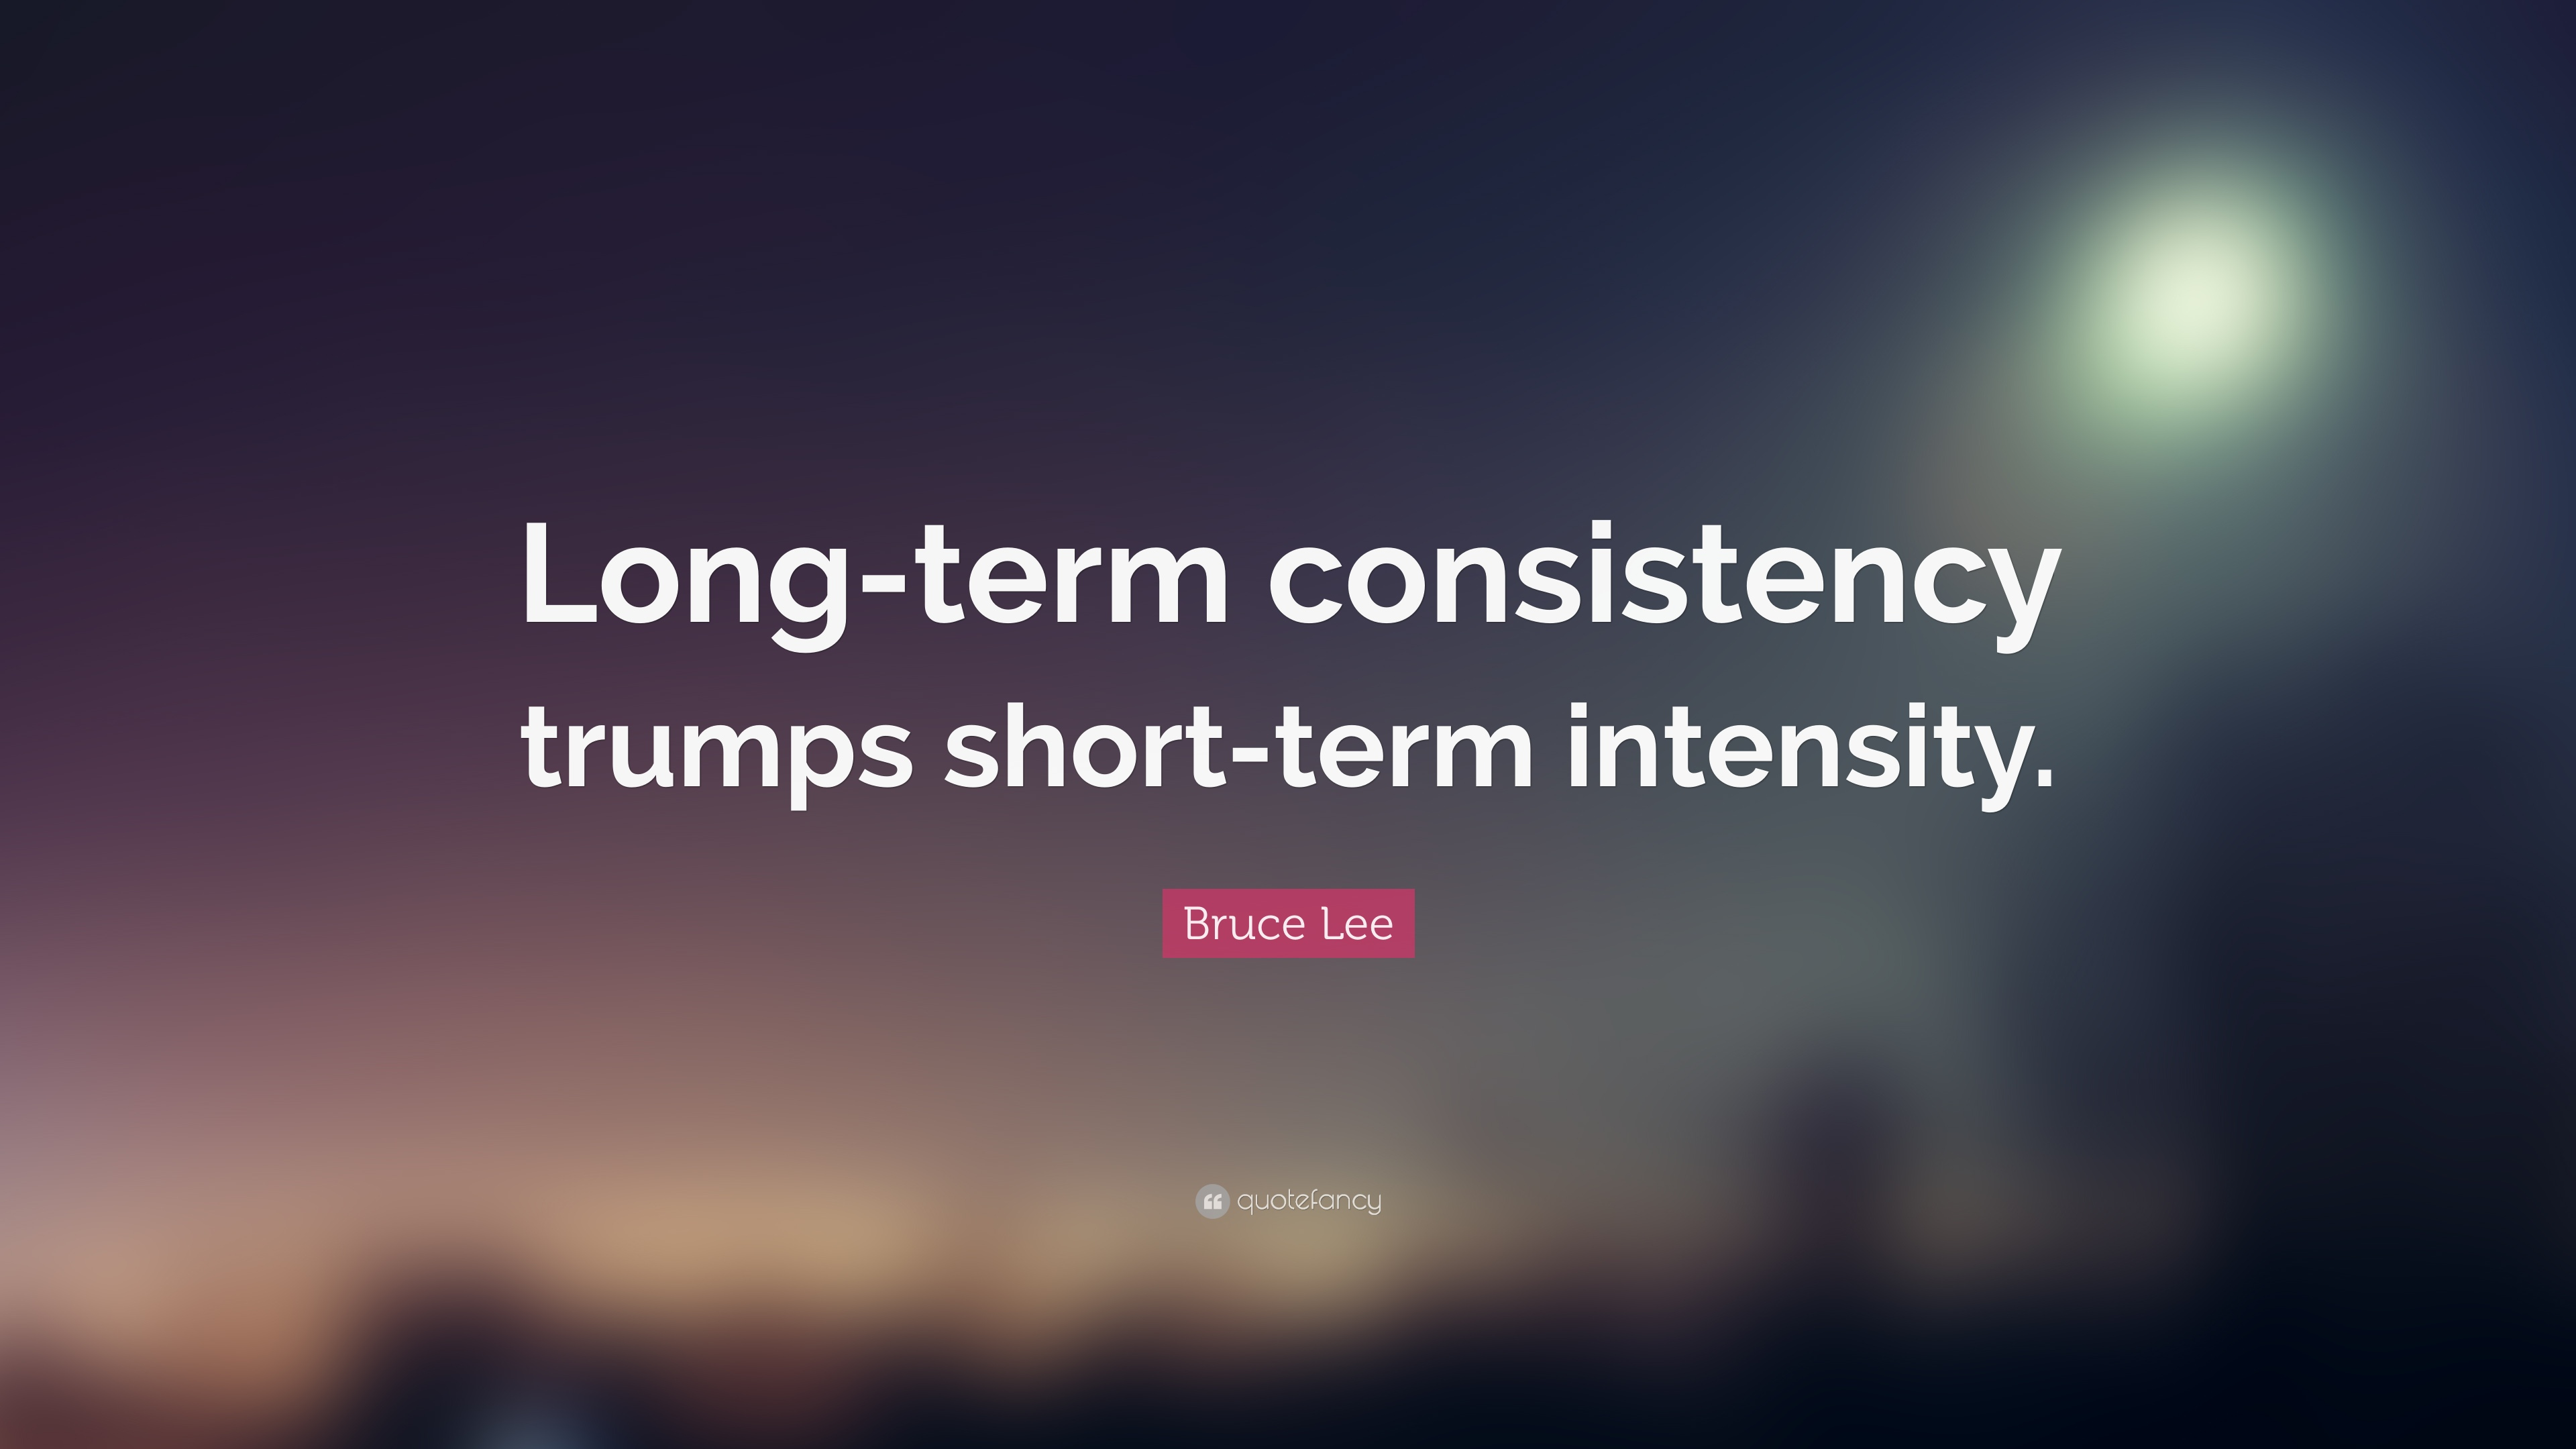 Wallpapers Of Christian Quotes Bruce Lee Quote Long Term Consistency Trumps Short Term